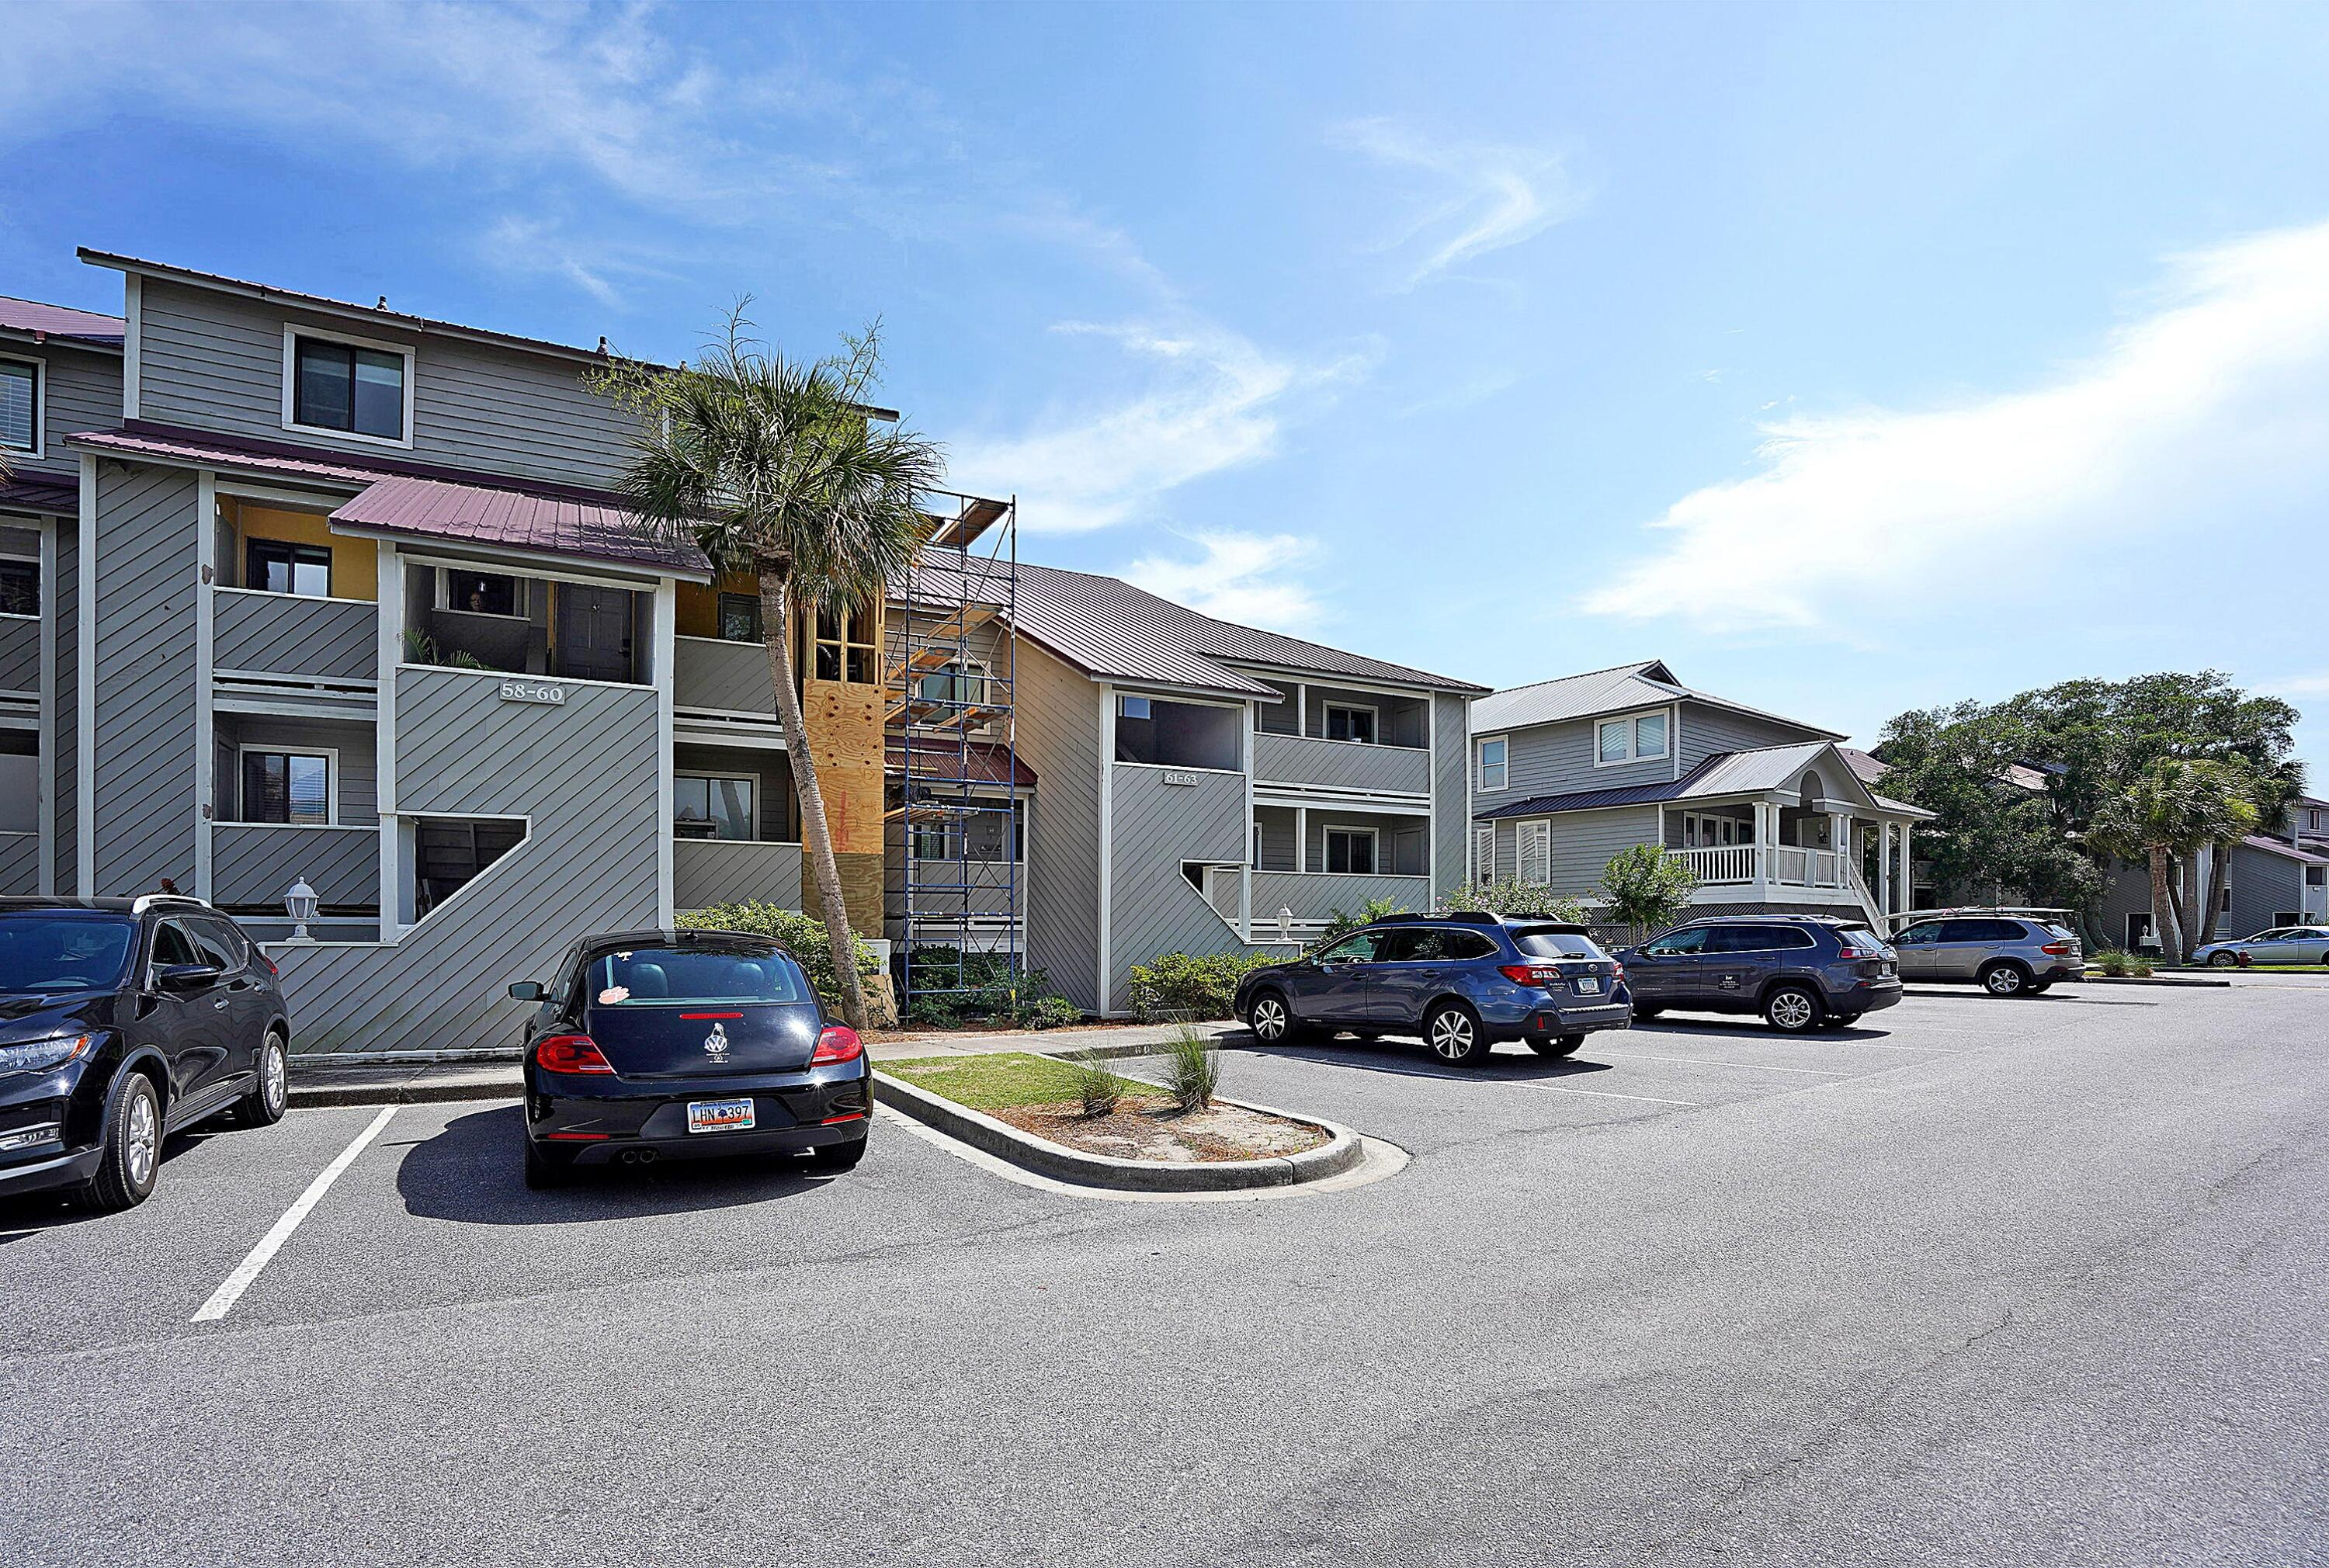 Mariners Cay Homes For Sale - 63 Mariners Cay, Folly Beach, SC - 13